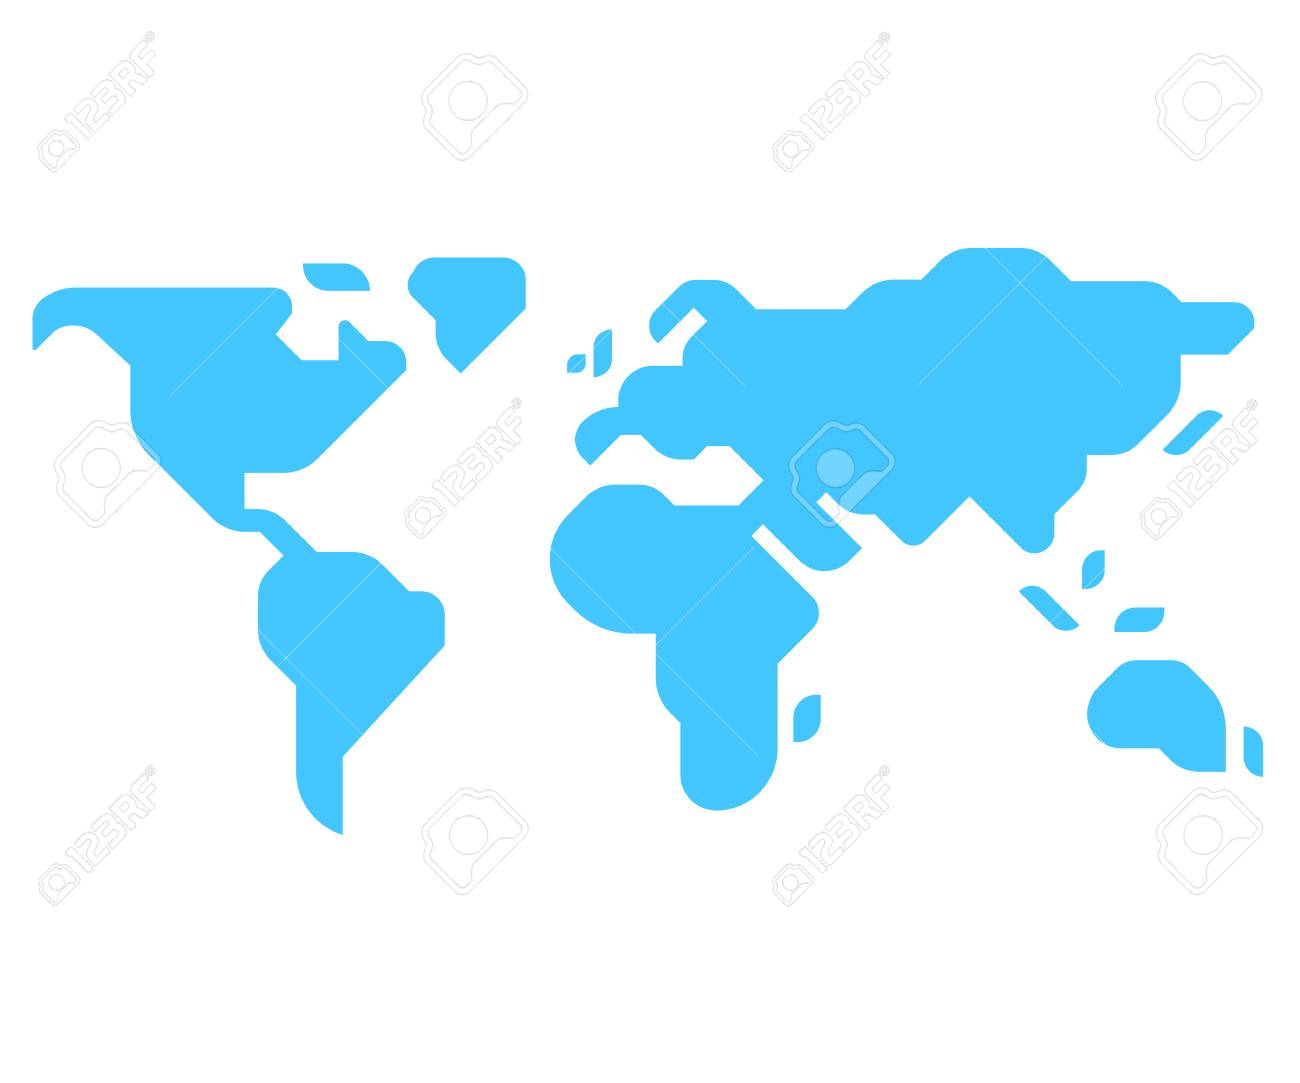 Simple Stylized World Map Silhouette In Modern Minimal Style. Isolated  Vector Illustration. Stock Vector